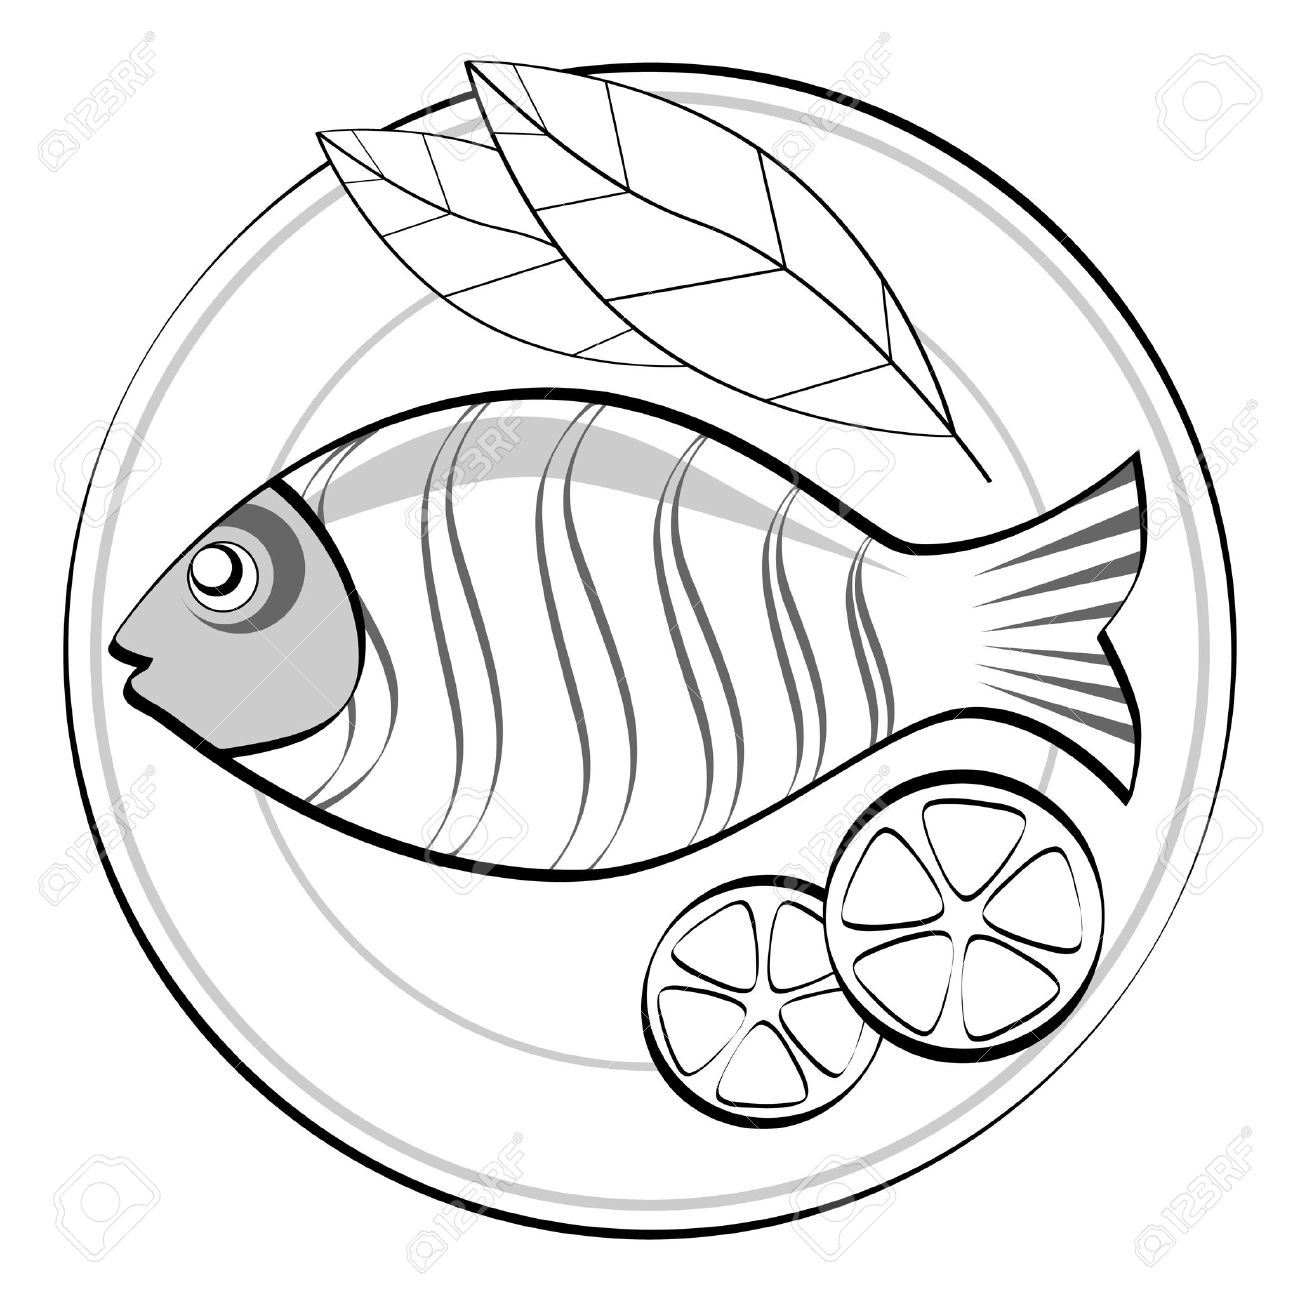 Images Fried Fish Clipart Black And White